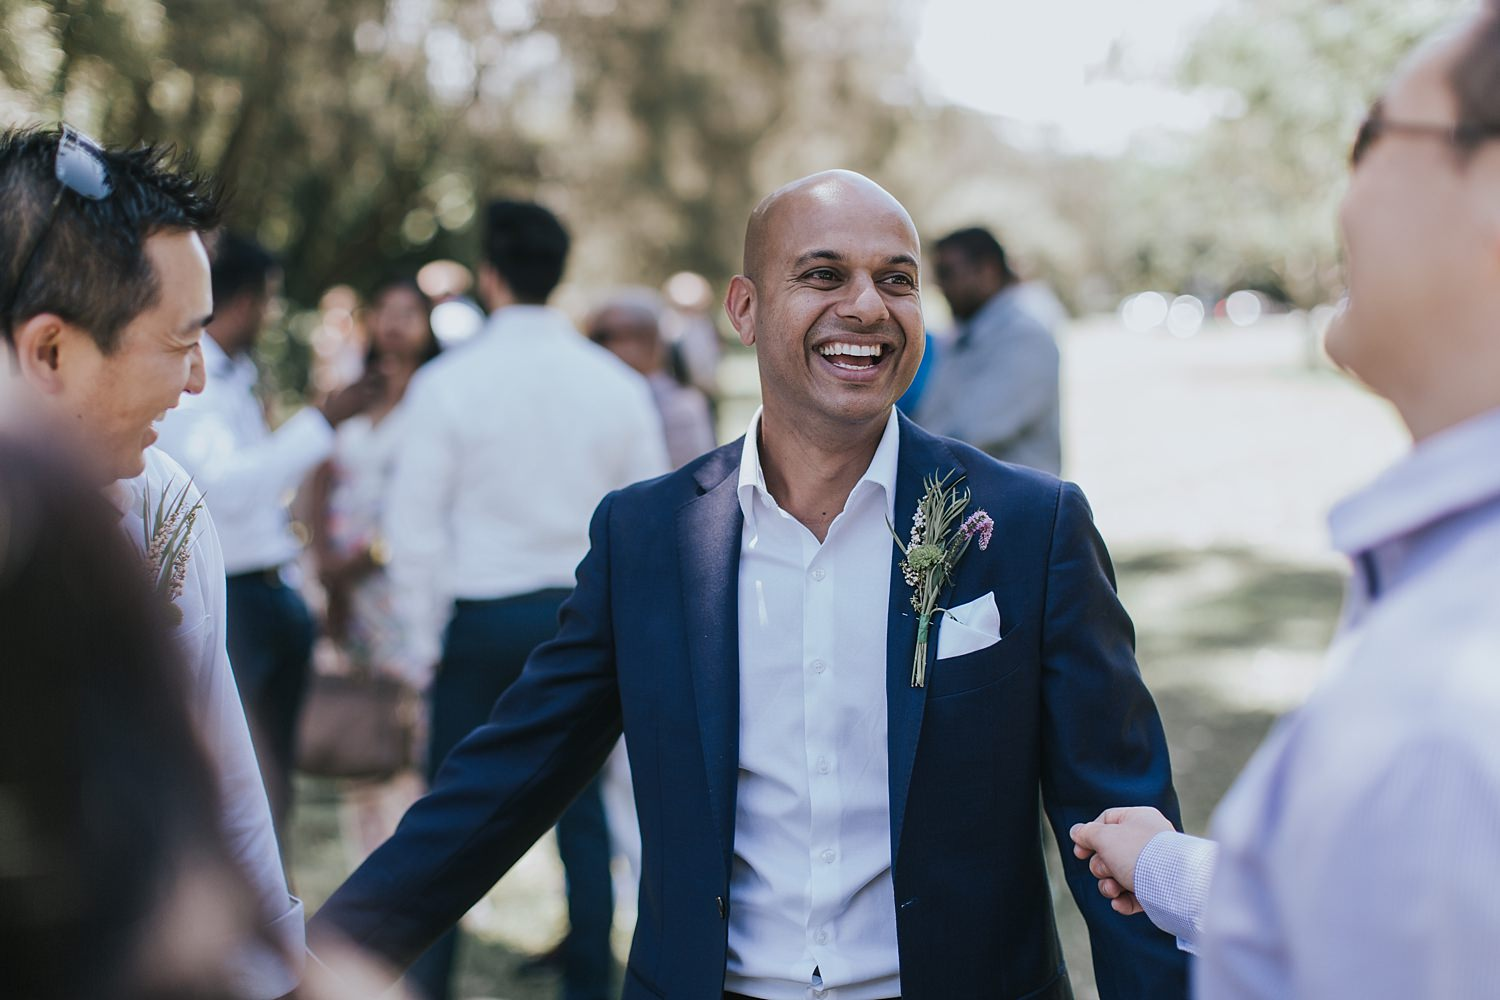 groom happily smiling for his wedding day